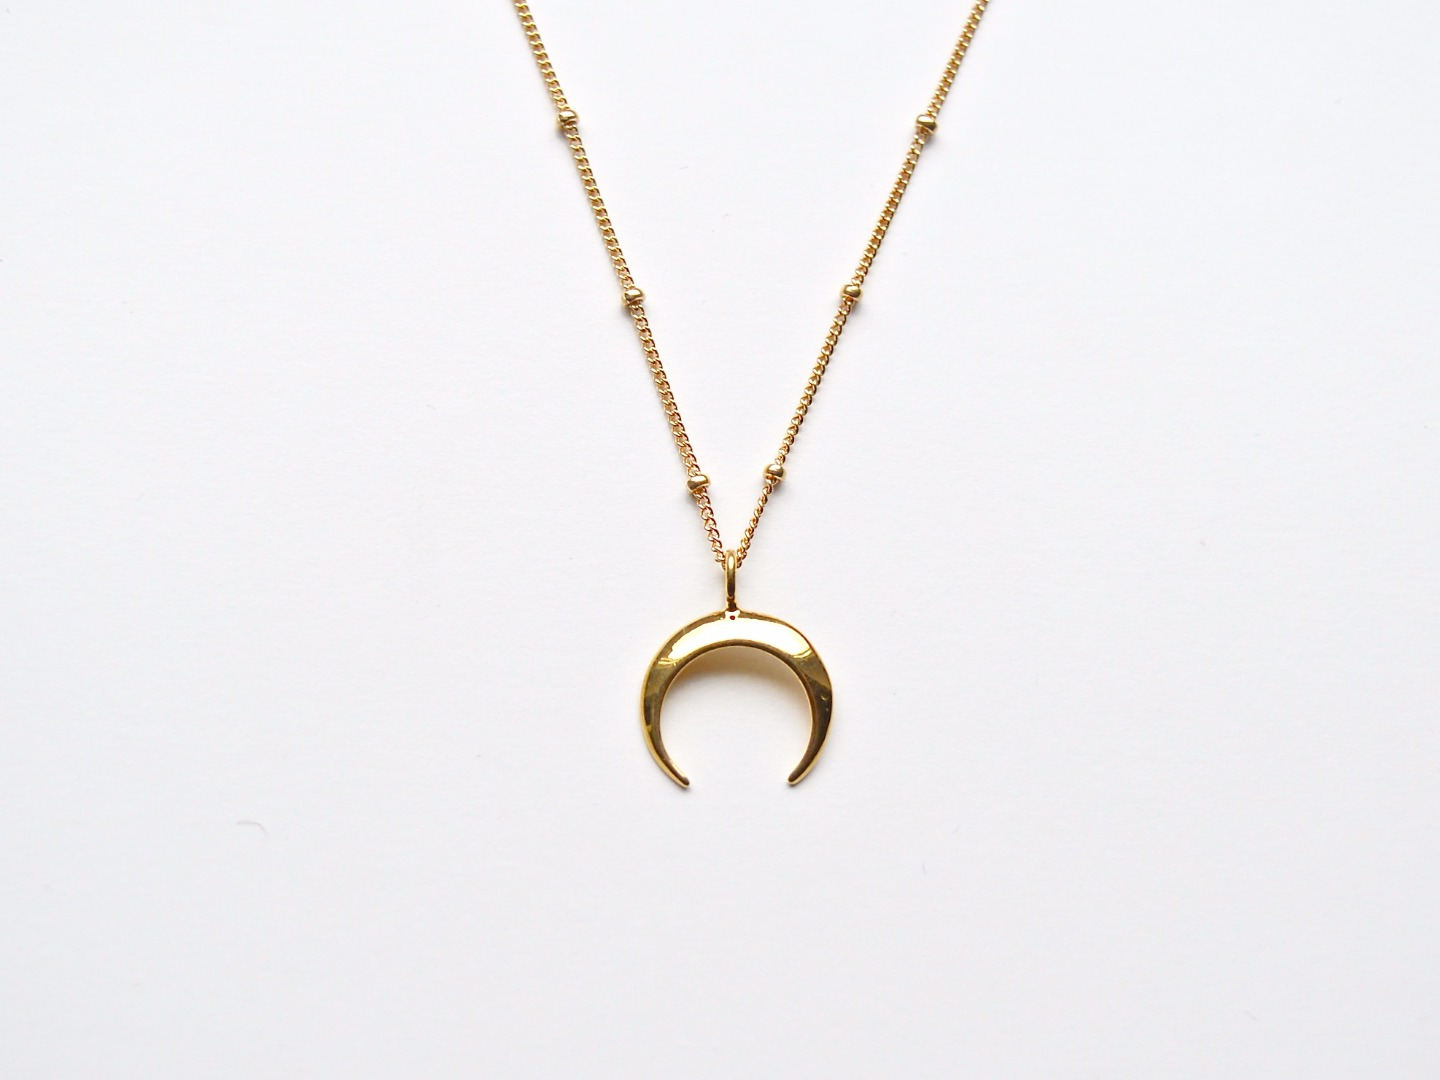 New in Big Crescent Moon Kette vergoldet